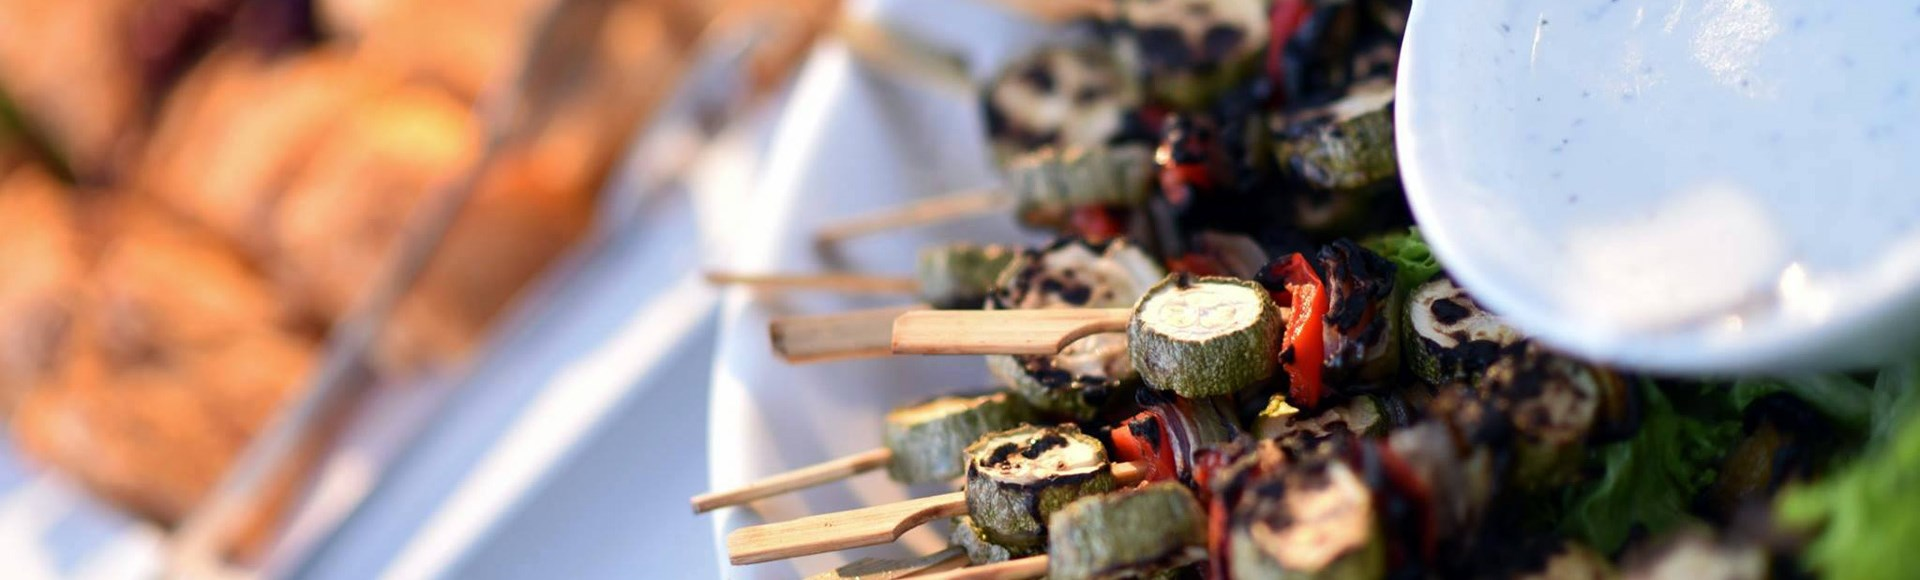 grilled-veggies-on-a-skewer-with-light-yogurt-spread - Private Chef Service For Your Villa Holidays In Santorini, Cyclades, Greece